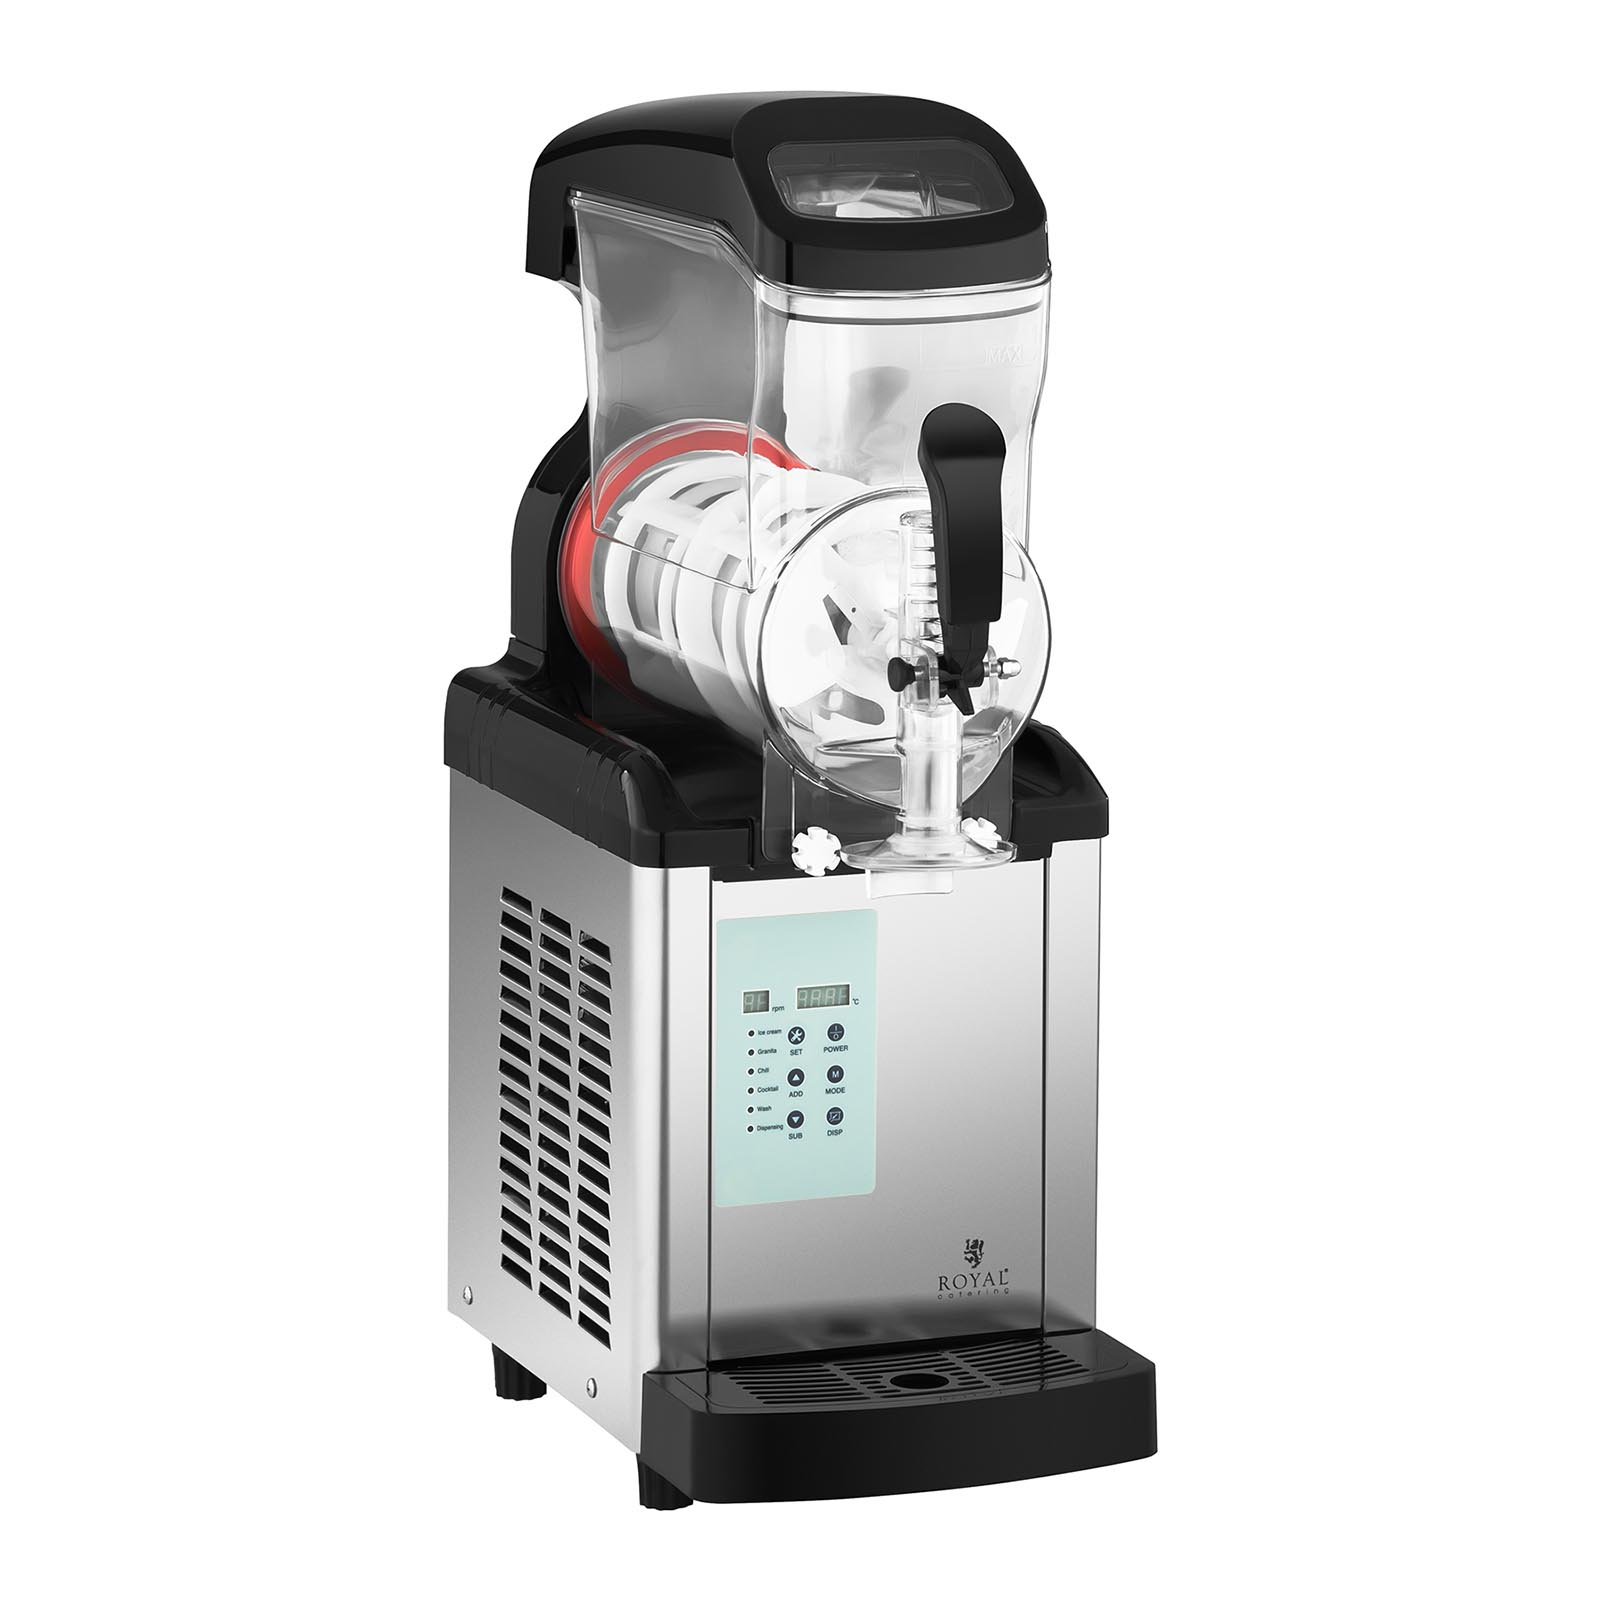 Royal Catering Slush-Maschine - 6 Liter - -20 °C Mindesttemperatur - Ice-Cream-Funktion RCSL 1/6ICE